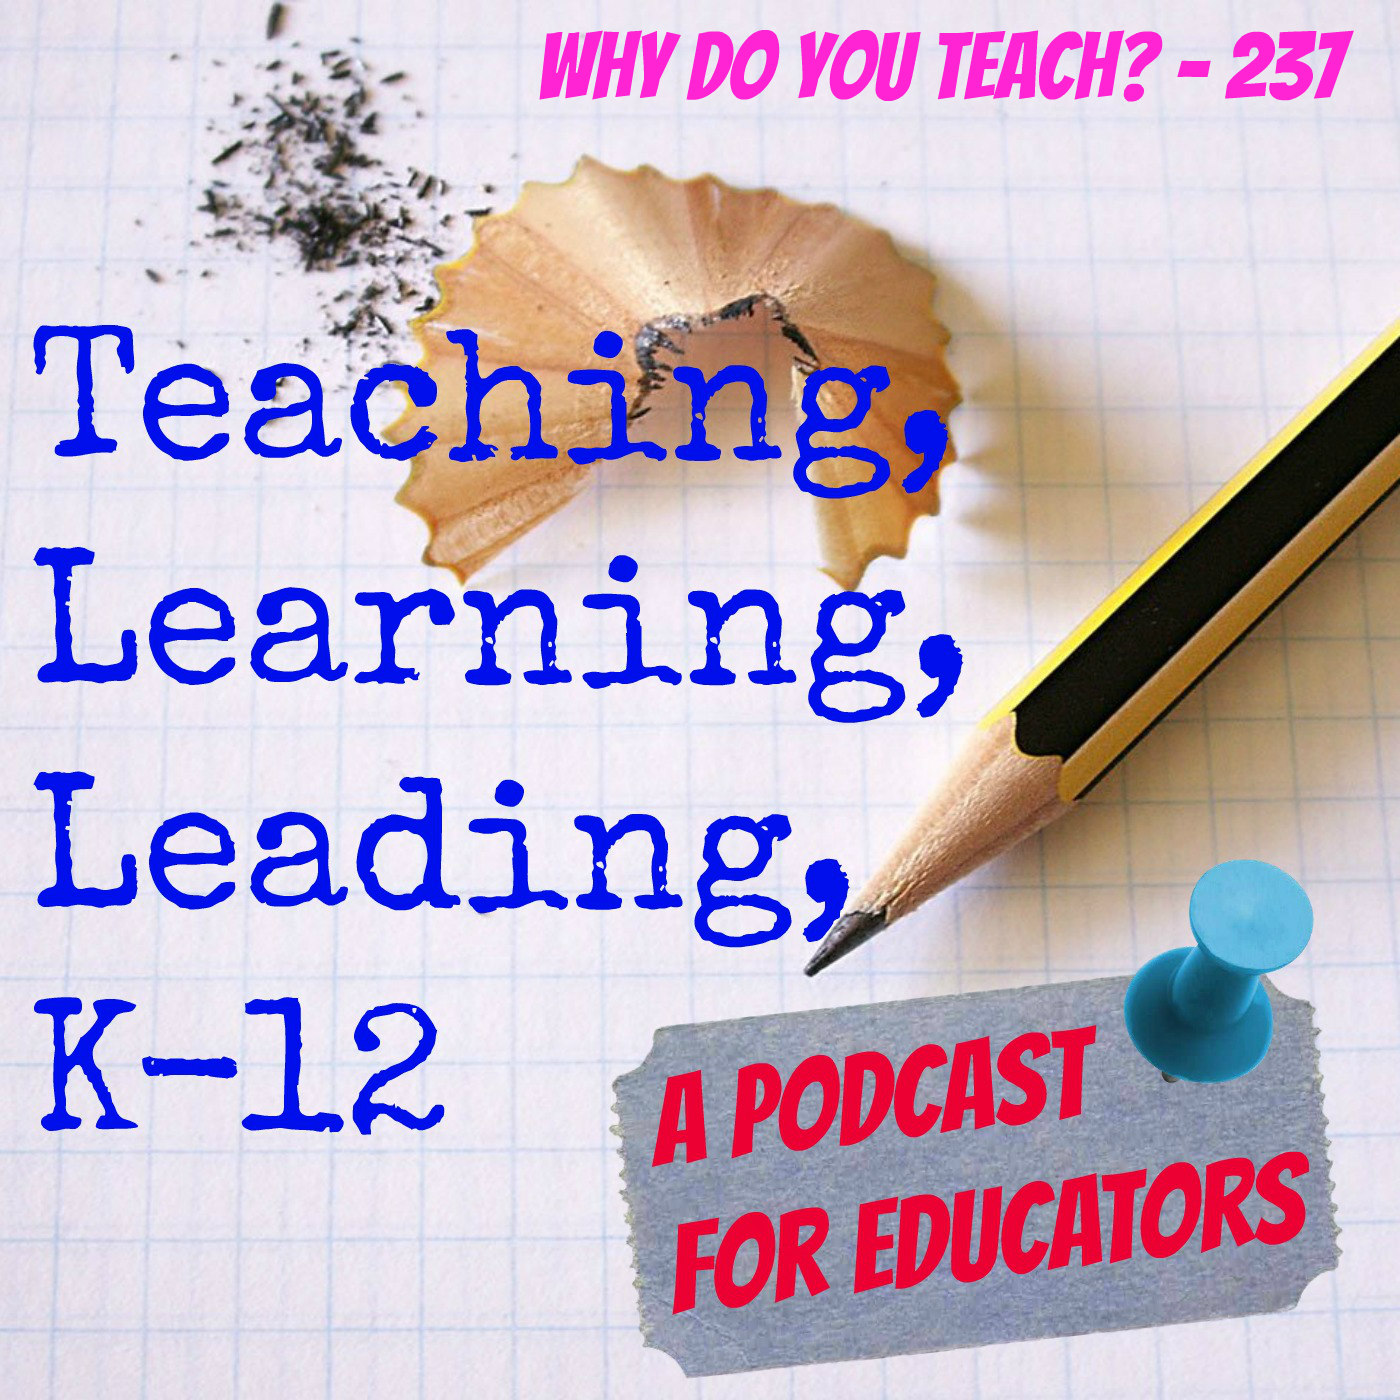 Why Do You Teach? - 237